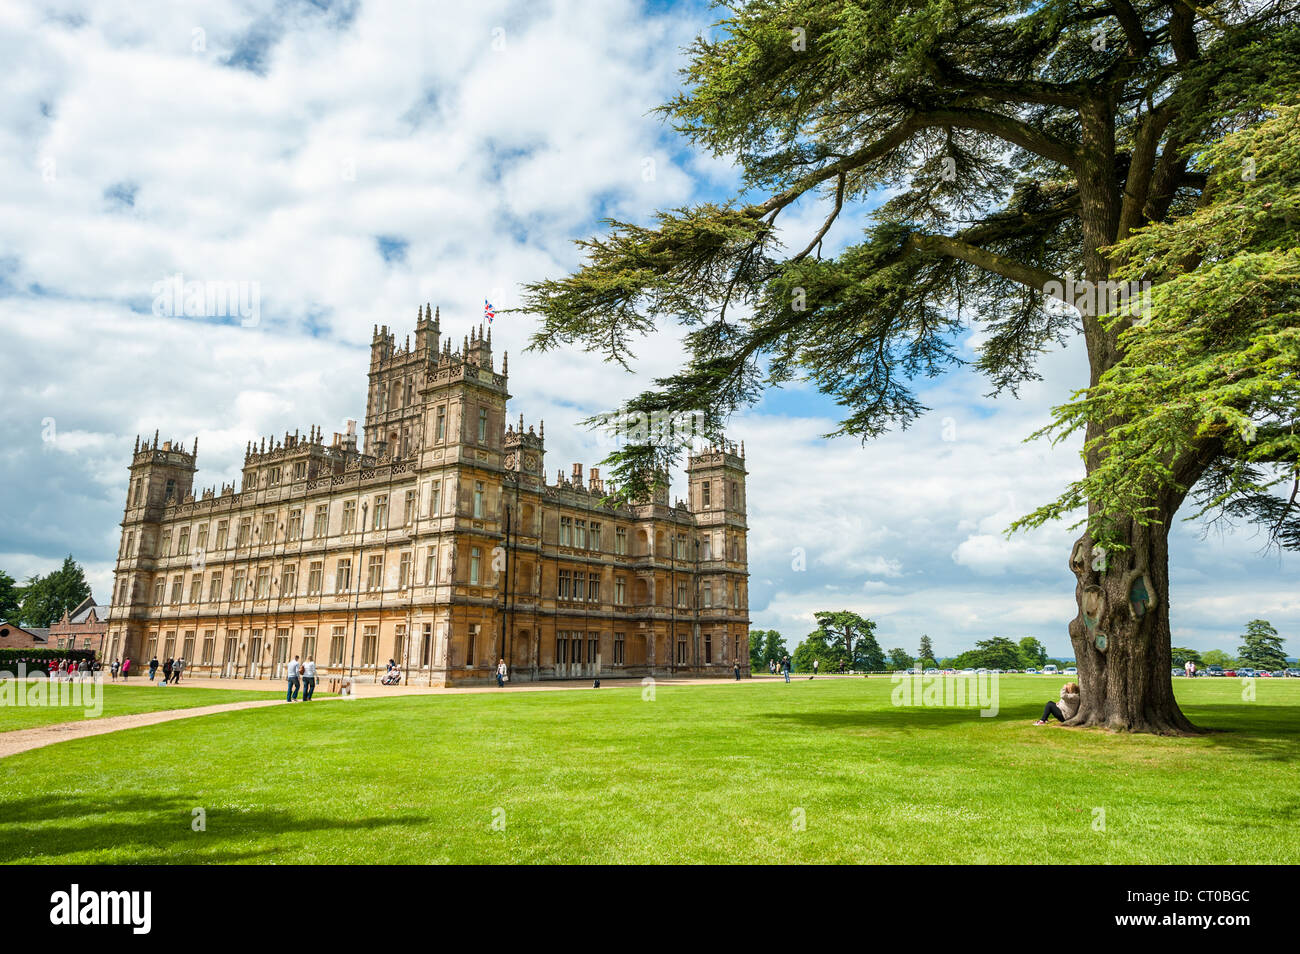 highclere-castle-grounds-with-tree-highc